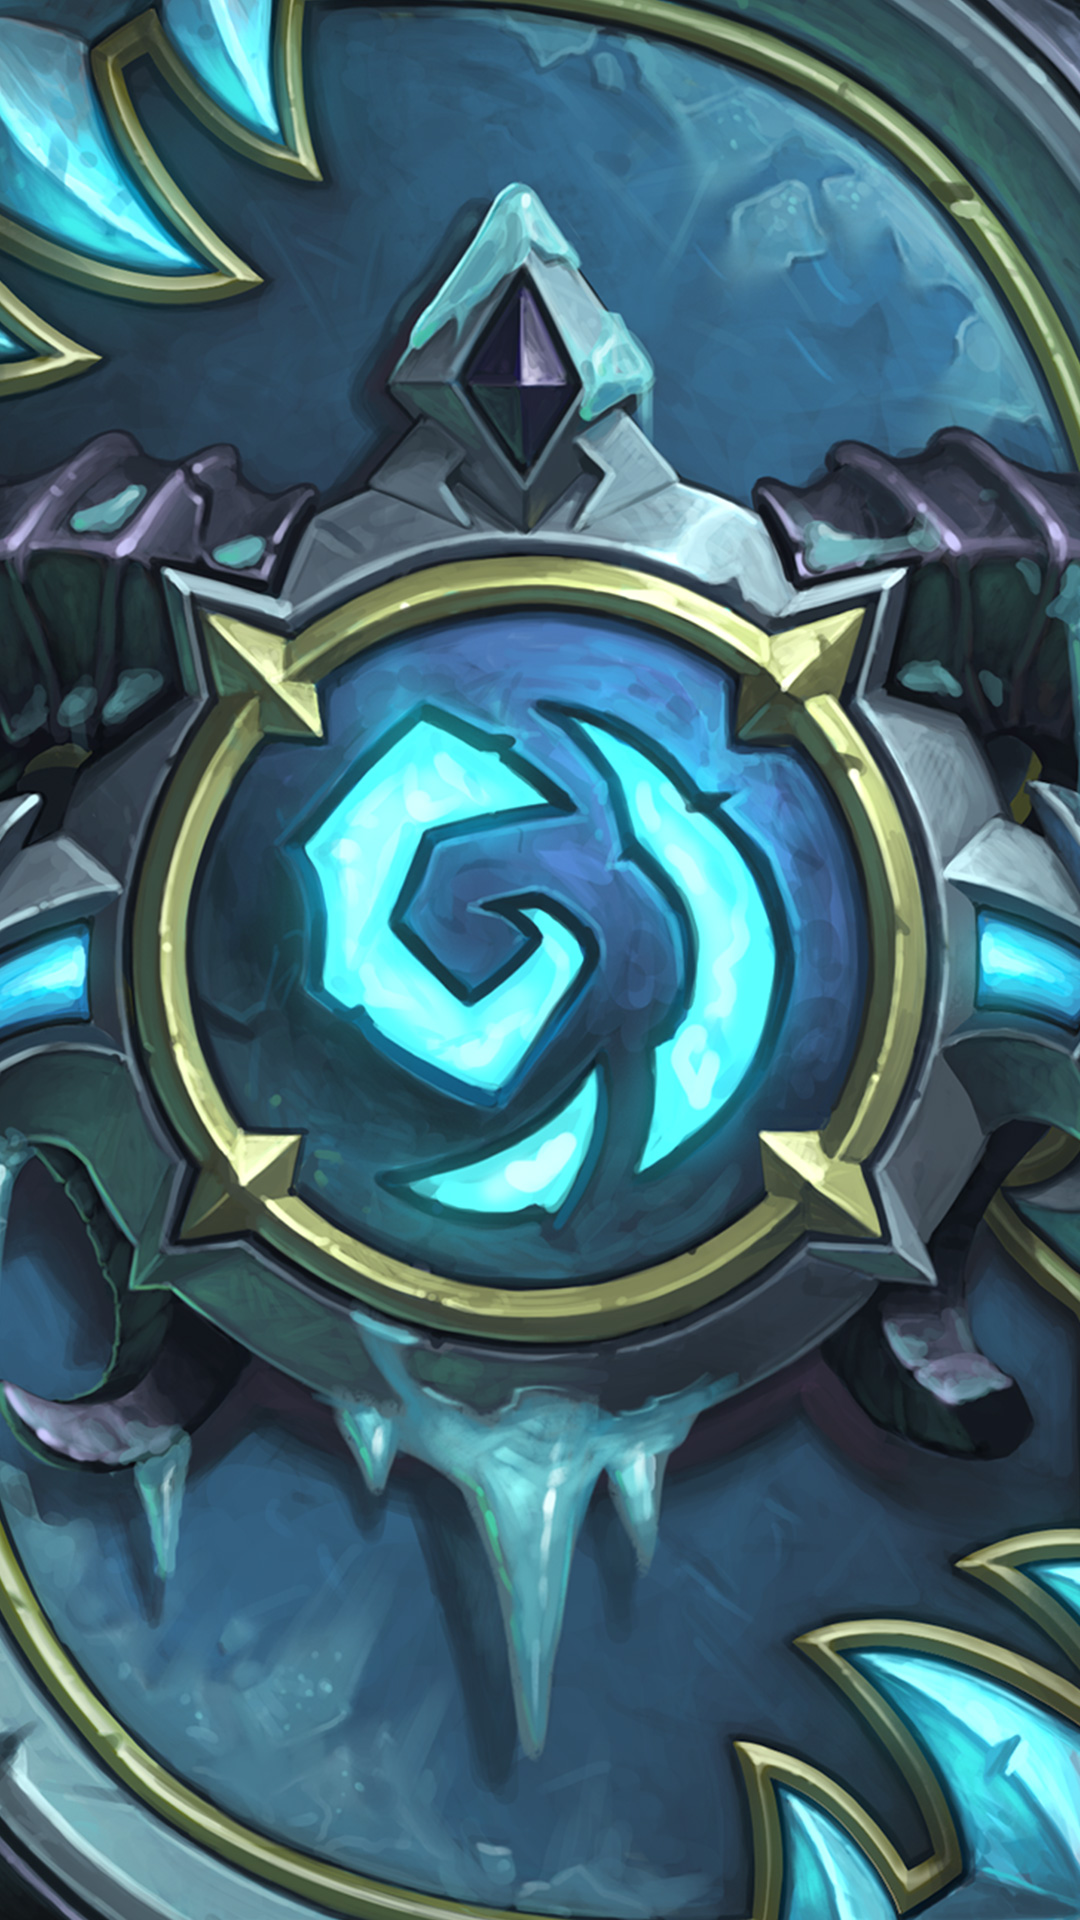 8 Bit Iphone X Wallpaper Knights Of The Frozen Throne Wallpapers Hearthstone Top